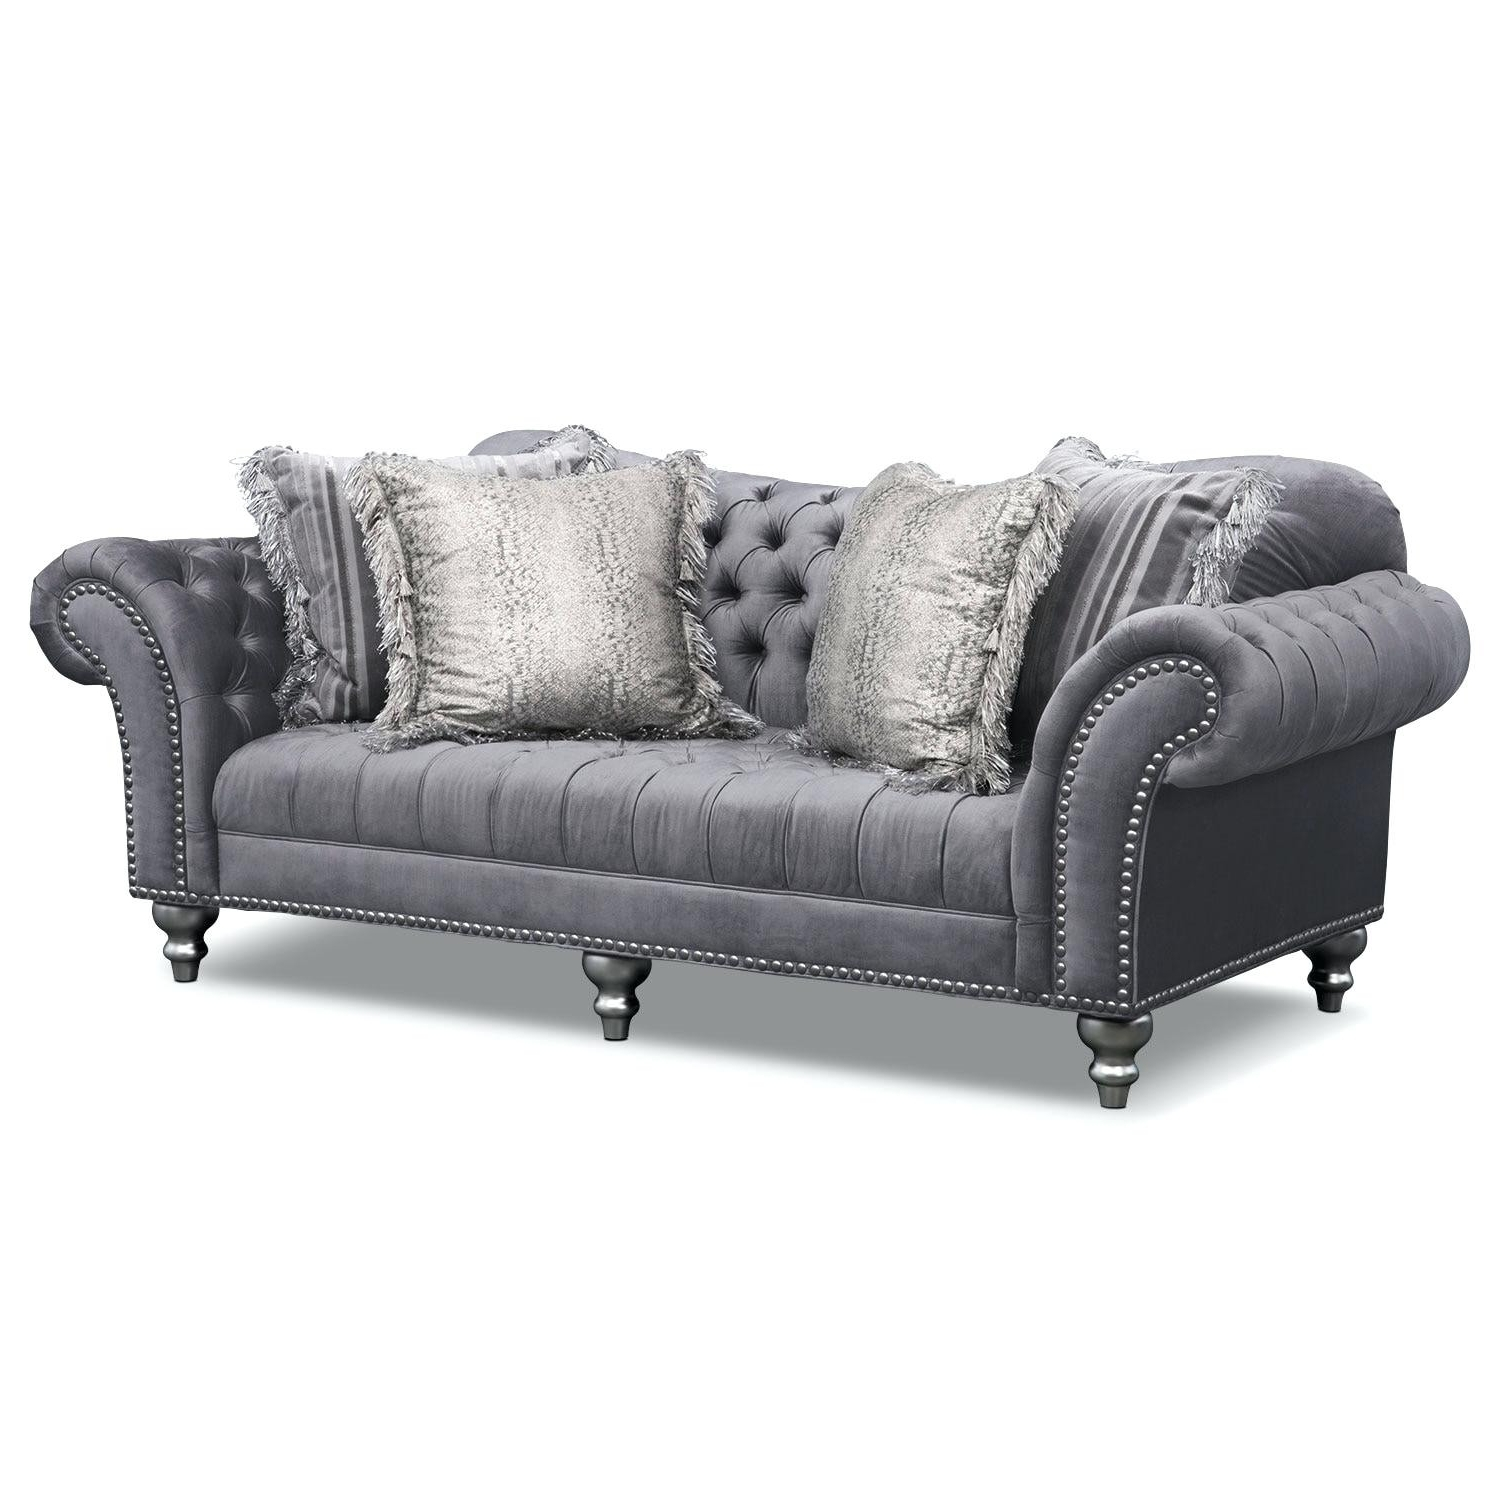 Latest Sofa : Sleep Sofa Sale Living Spaces Sofa Beds Value City Intended For Value City Sofas (View 8 of 20)